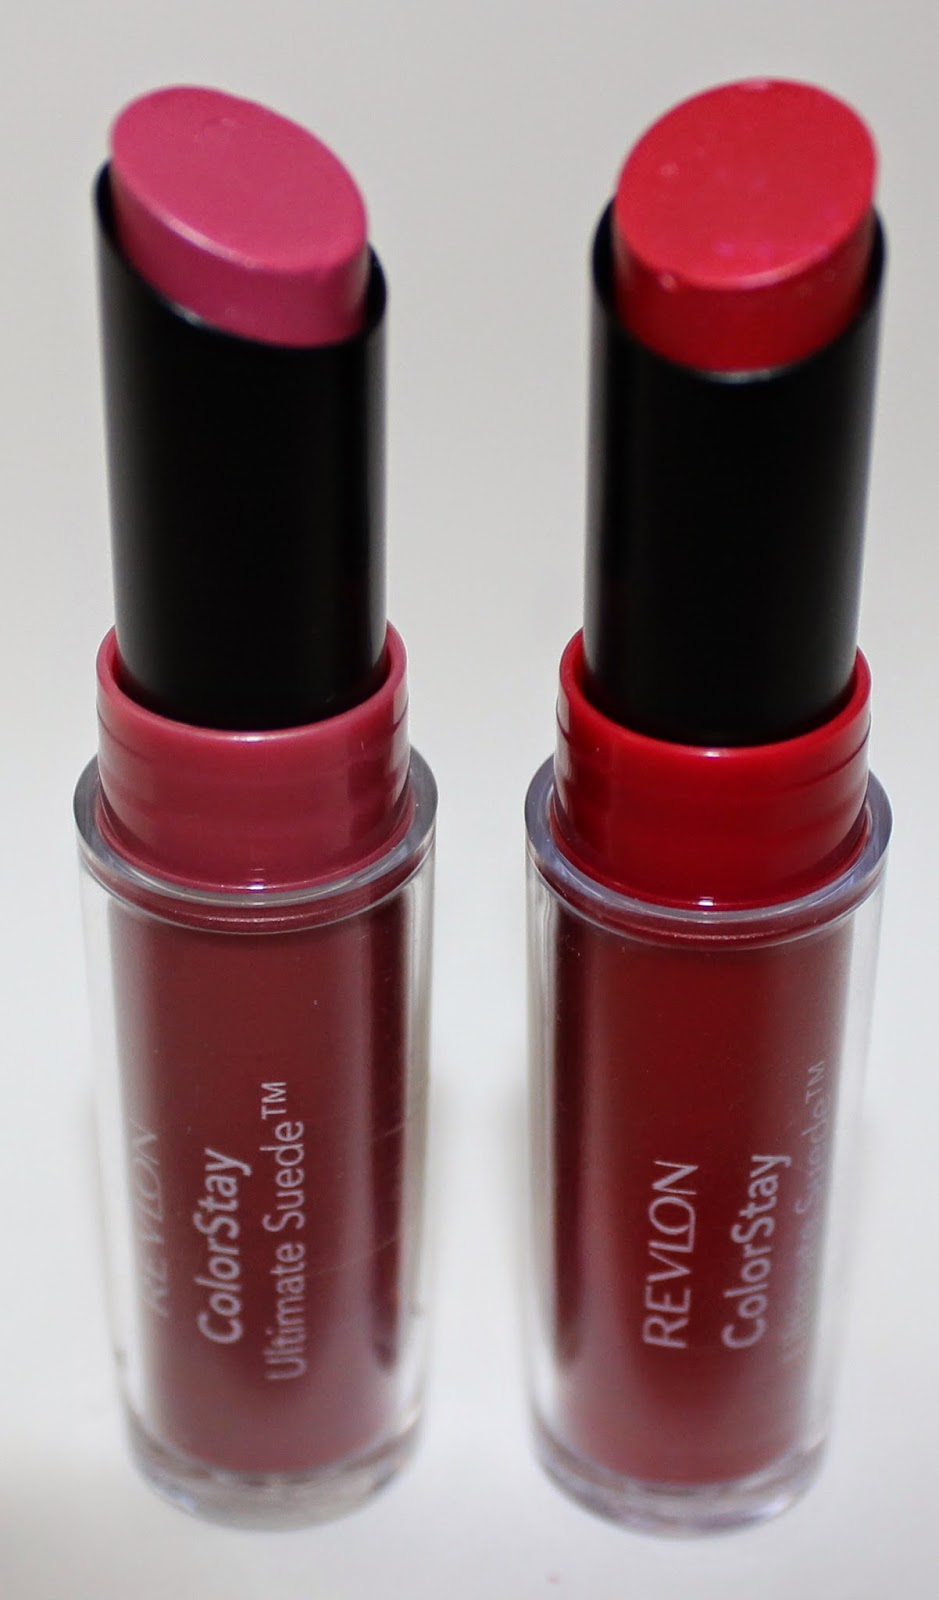 Revlon ColorStay Ultimate Suede Lipstick in Preview & Couture